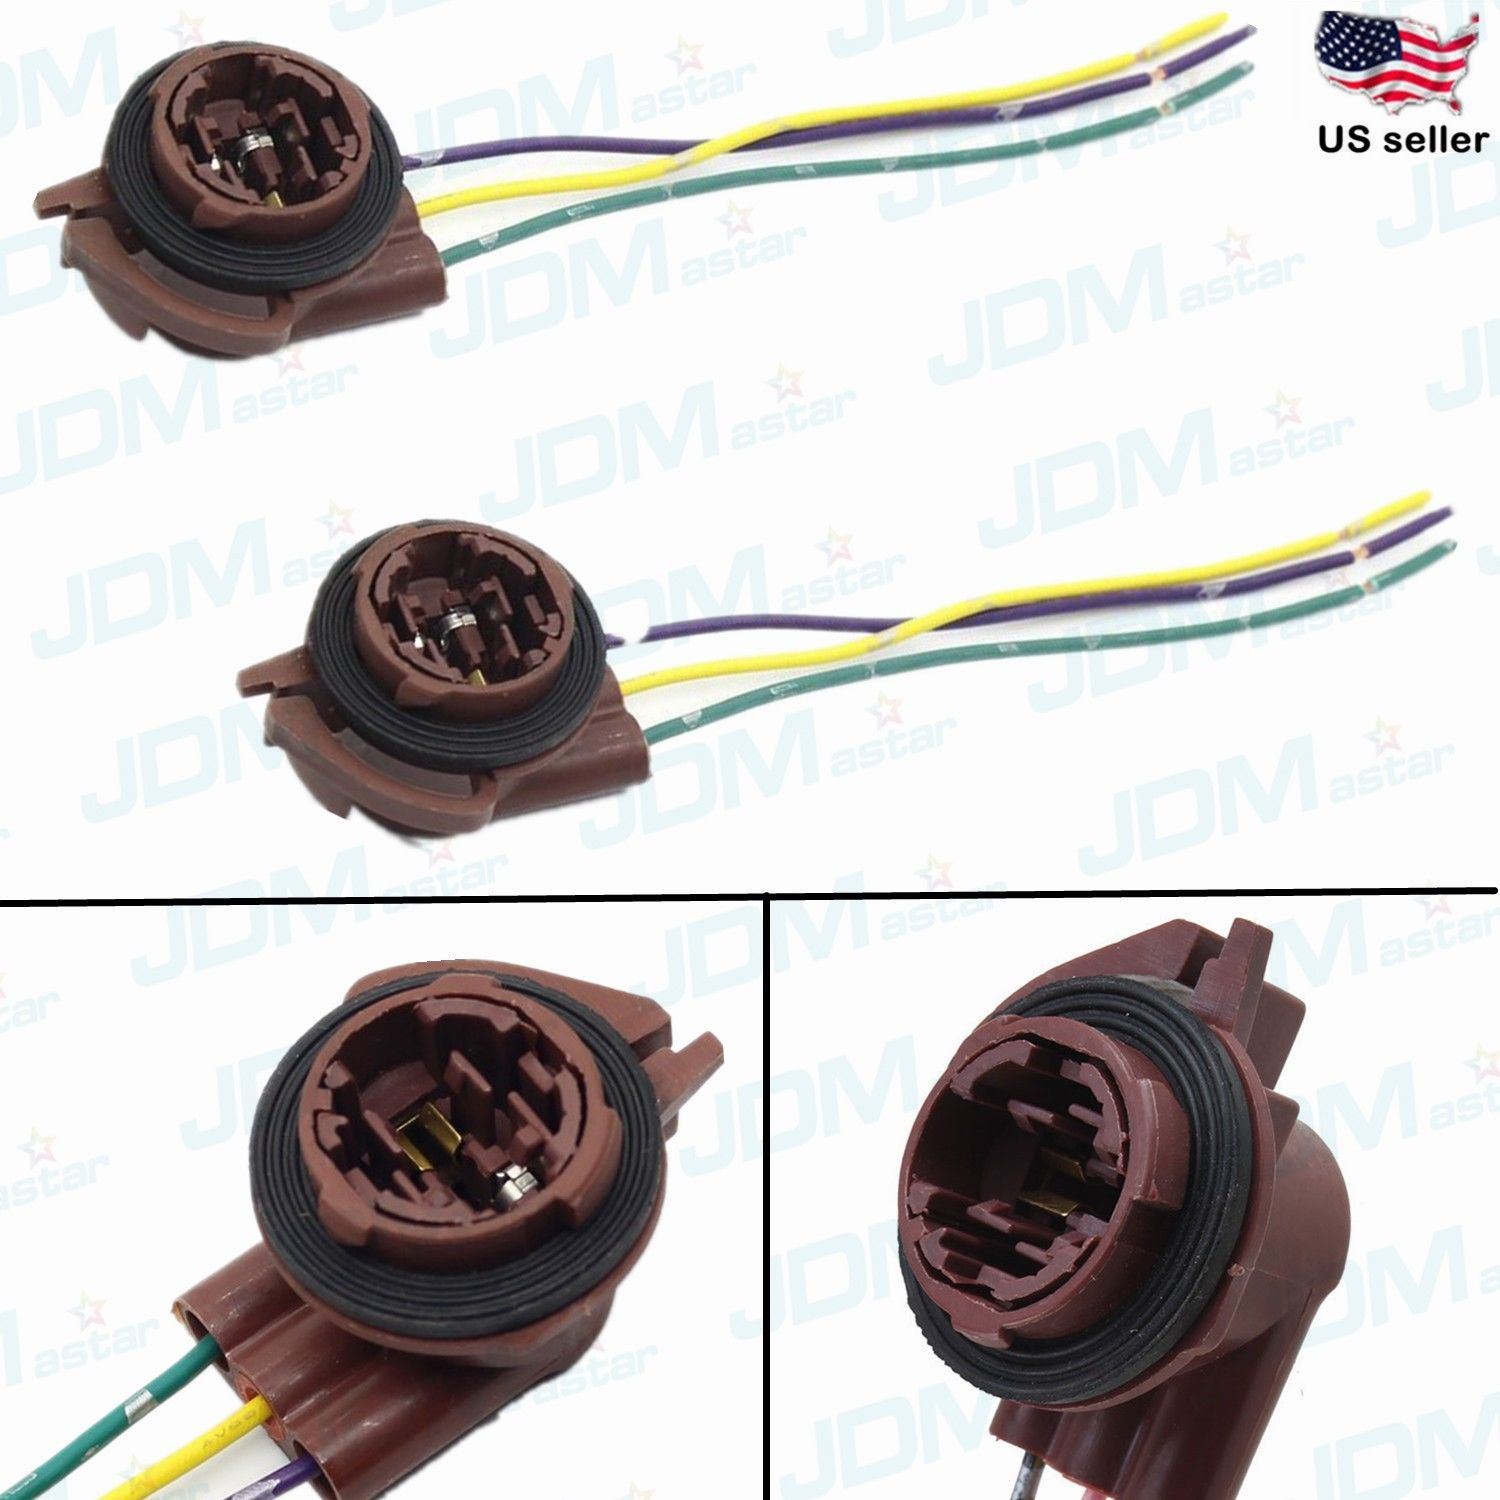 3157A socket harness 1?versionId=luZVsWTmtBB0K6WrOp6TCHwbqxcaKjlO jdm astar 3157 4157na bulb socket turn signal light harness wire 1986 Toyota 4Runner Wiring Harness at creativeand.co